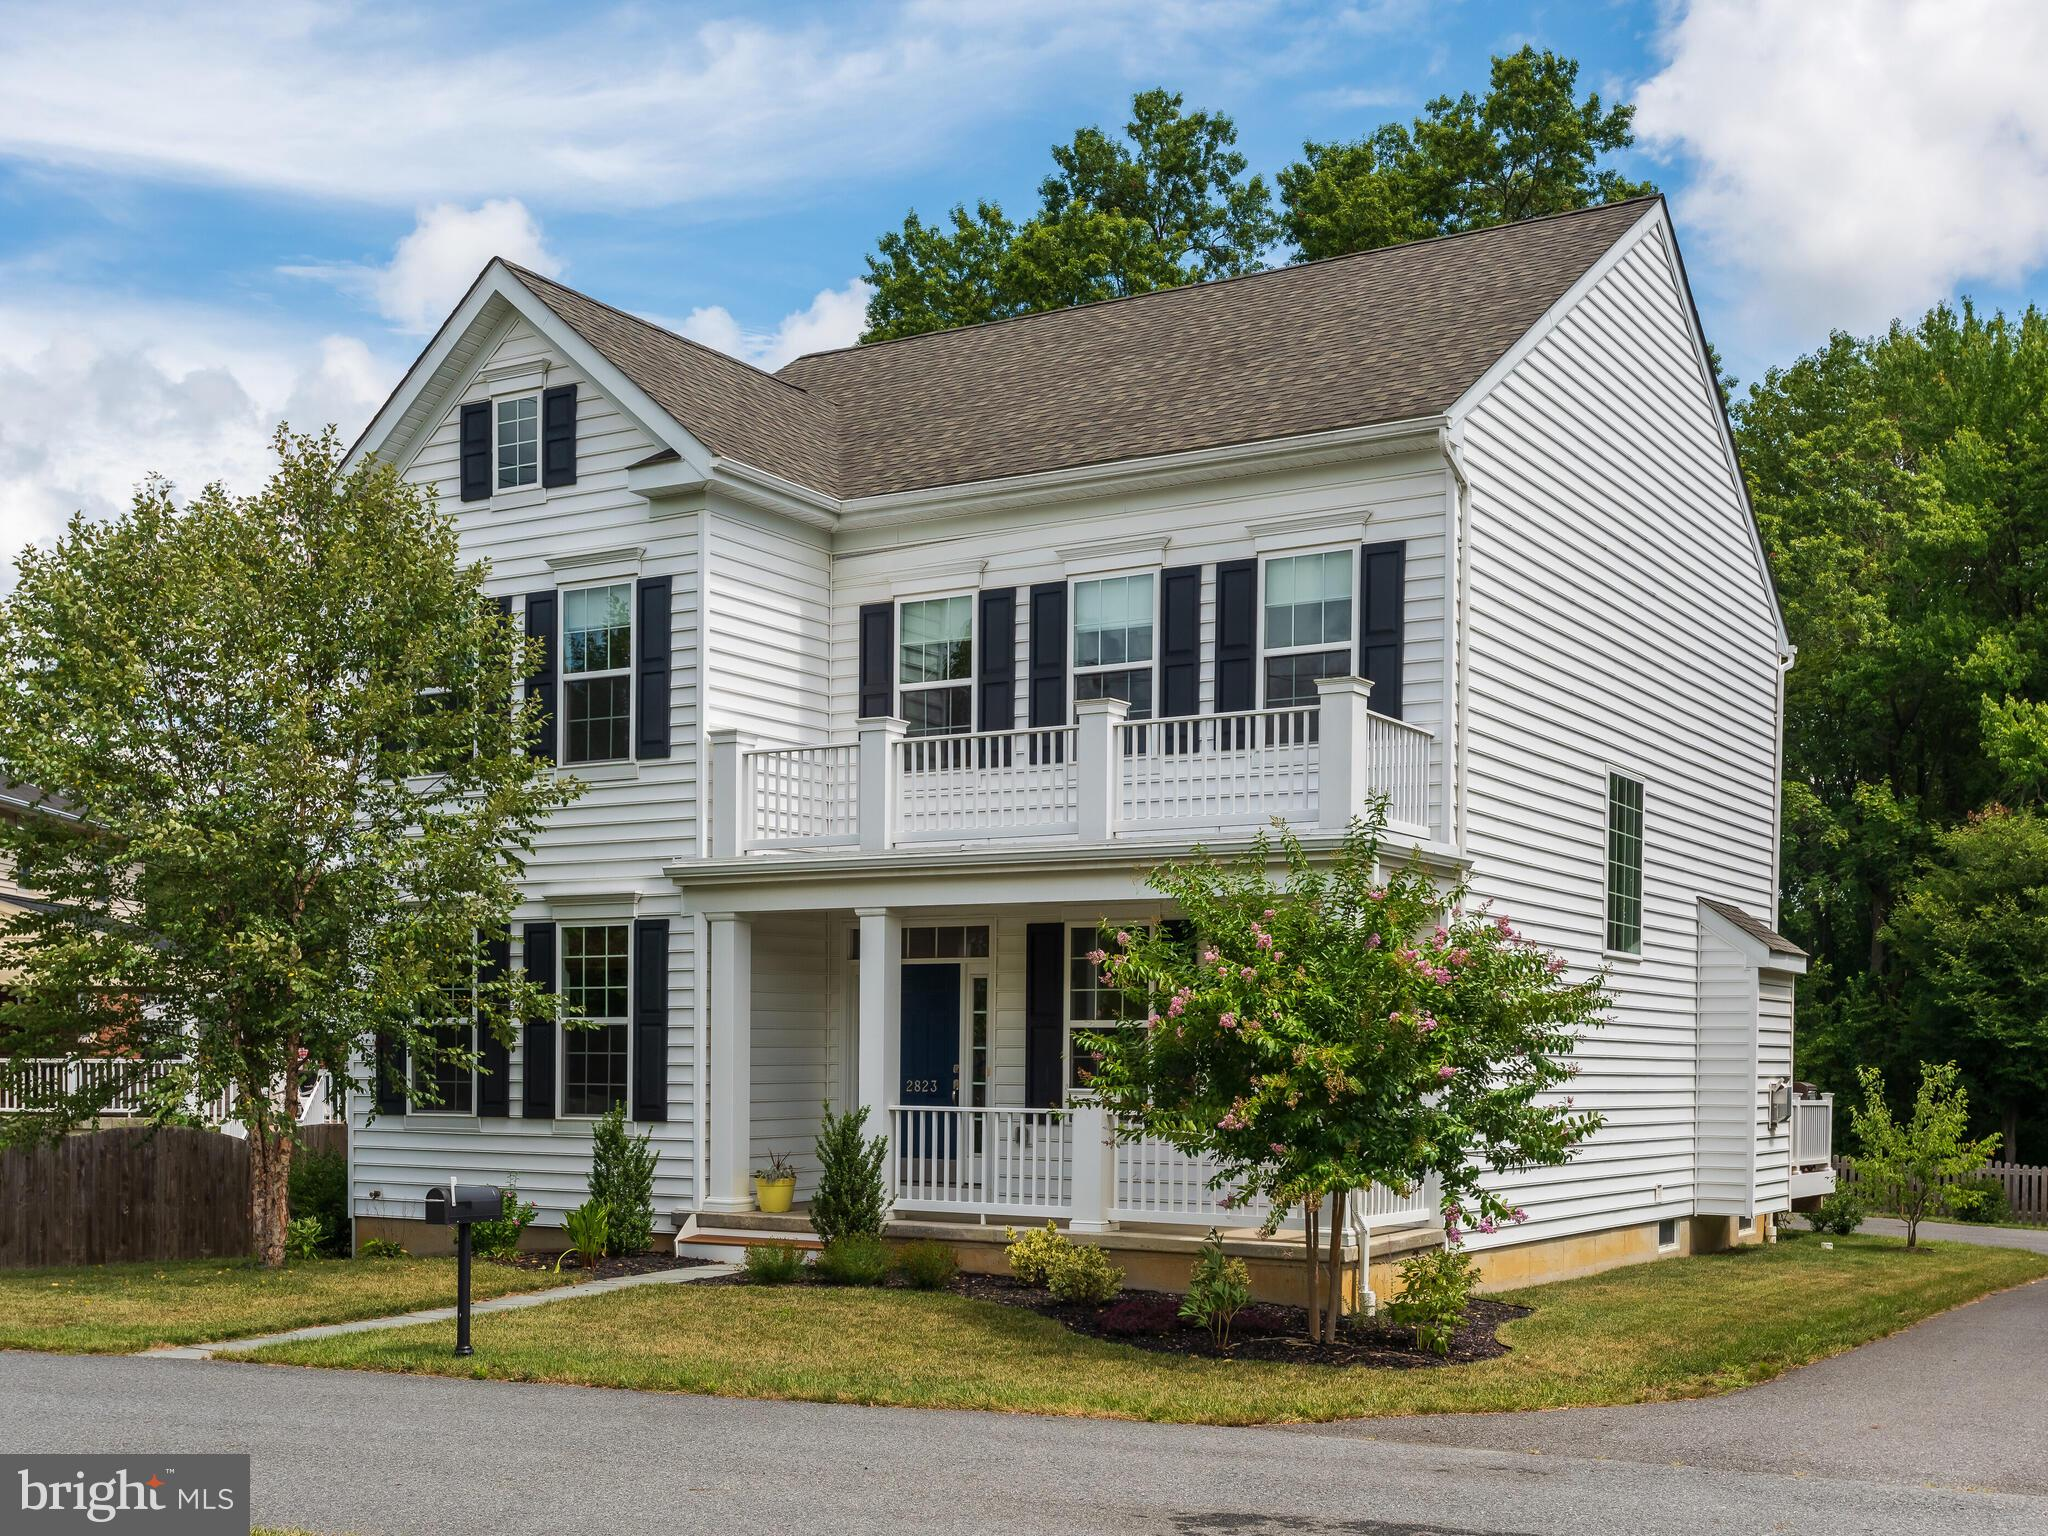 """Seller looking to relocate now, and have made a generous price reduction making this custom built home one of the best values in North Wilmington today! This Stunning two story home was Built in 2017 by Montchanin Design. The home shows pride of ownership throughout. The beautifully flowing and """"open"""" floorplan was designed for todays living, with plenty of room where it matters most. Loads of upgrades include hardwood flooring, stainless appliances, Shaker kitchen with Granite, professionally finished basement with egress and more. This home is set off the road behind a private landscaped berm on over a half acre of land. The rear yard has a spacious area cleared and  fenced in with wooded space behind the fence for nature trails, tree fort or just added privacy. All rooms are generously sized, and features four bedrooms on the second floor and a 5th bedroom in the finished lower level complete with full bath and additional family room. Energy Efficient construction include:  Two Zone Gas HVAC systems, insulated tilt windows, R49 attic insulation and more.  There is ample off street parking and an oversized two car side entry garage. Fabulous North Wilmington location directly across from the former Brandywine Country Club."""